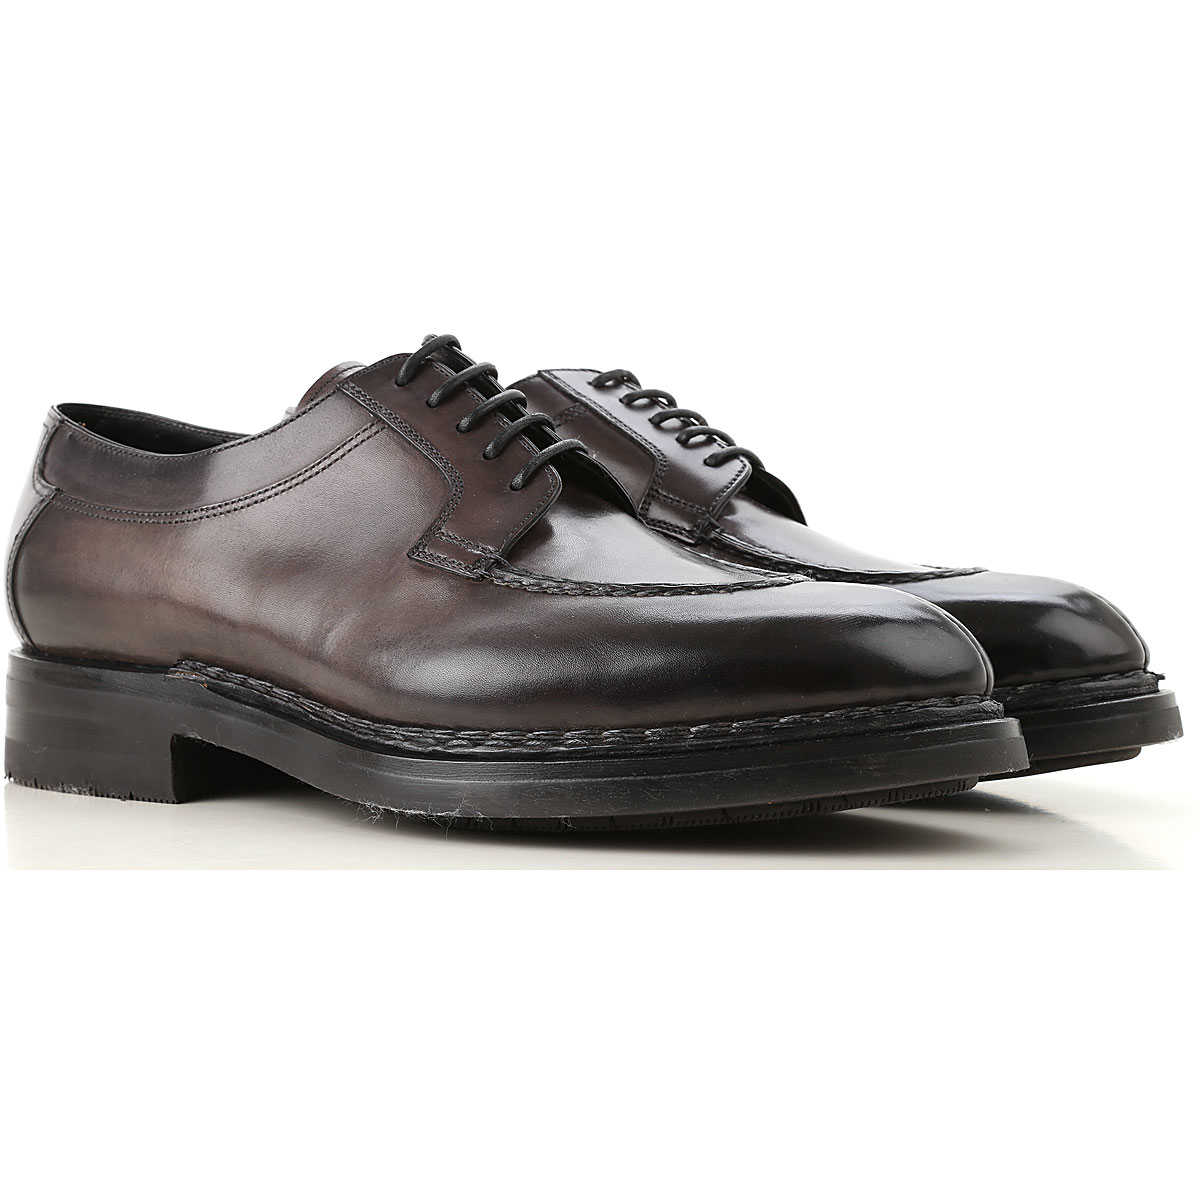 Santoni Lace Up Shoes for Men Oxfords Derbies and Brogues On Sale USA - GOOFASH